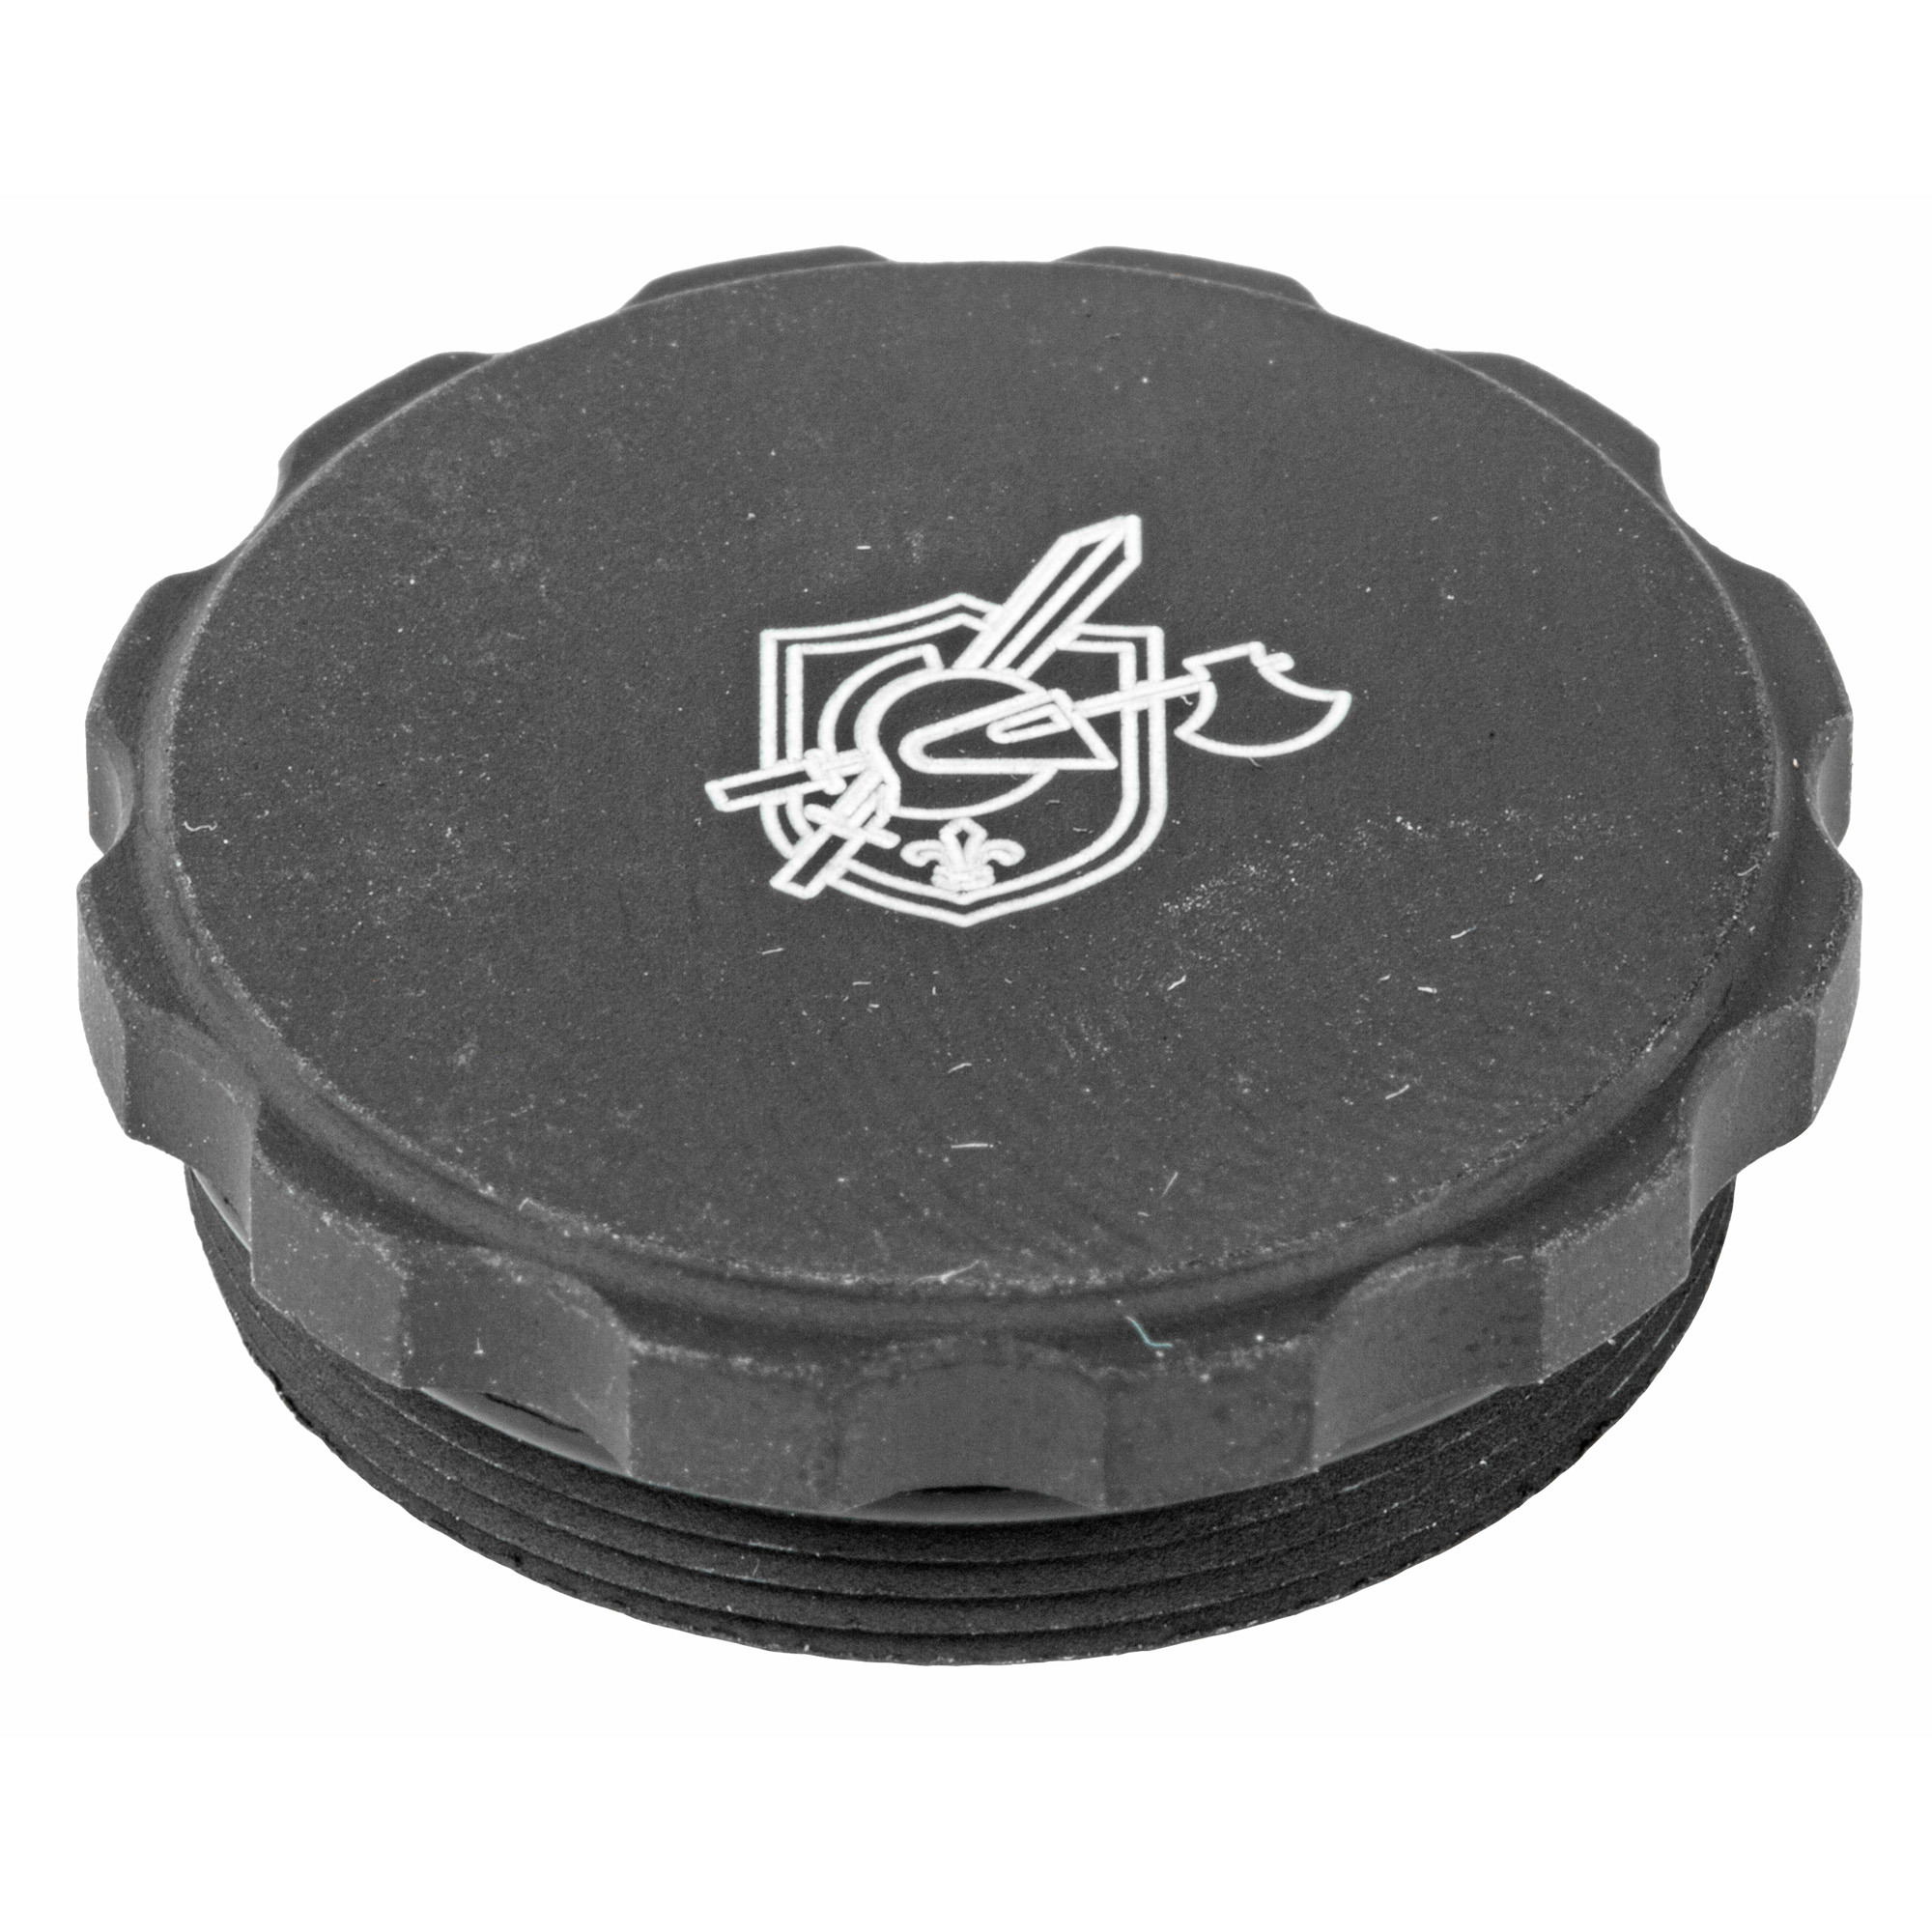 Show off your Knight's pride and store a backup battery for your sight with the KAC Aimpoint T-1/T-2 Micro sight battery cap. This battery cap replaces the standard cap and allows for an extra battery to be stored under the cap. Black anodized aluminum with laser engraved Knight's Armament logo.